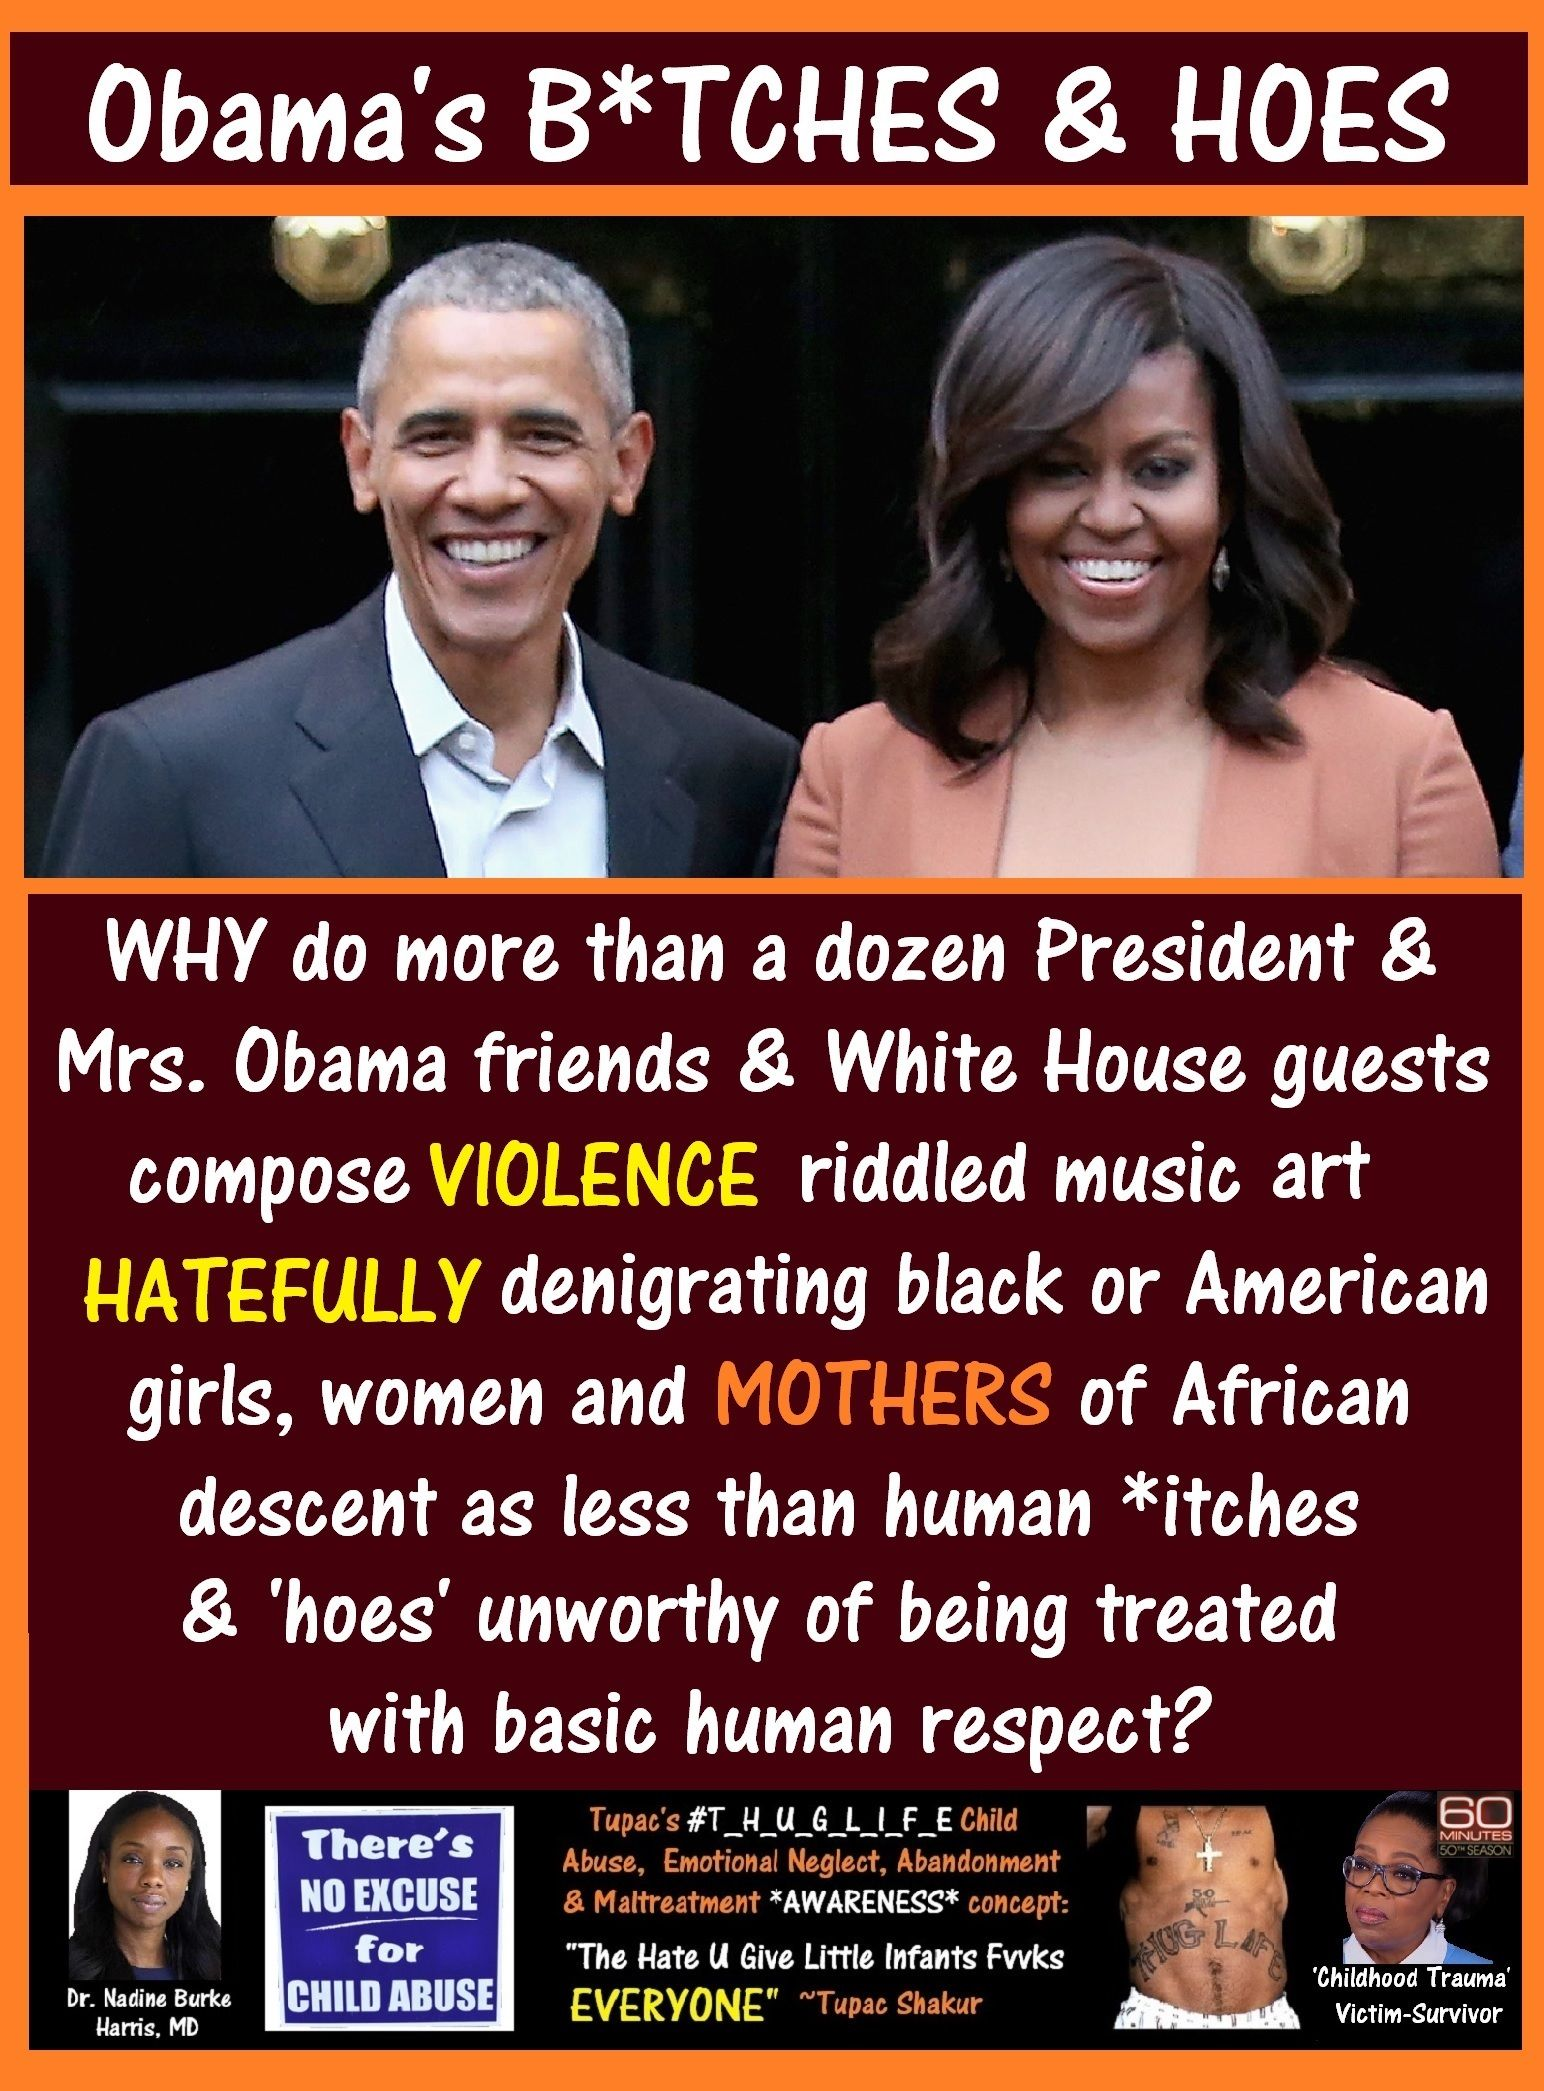 obama bitches hoes.jpg